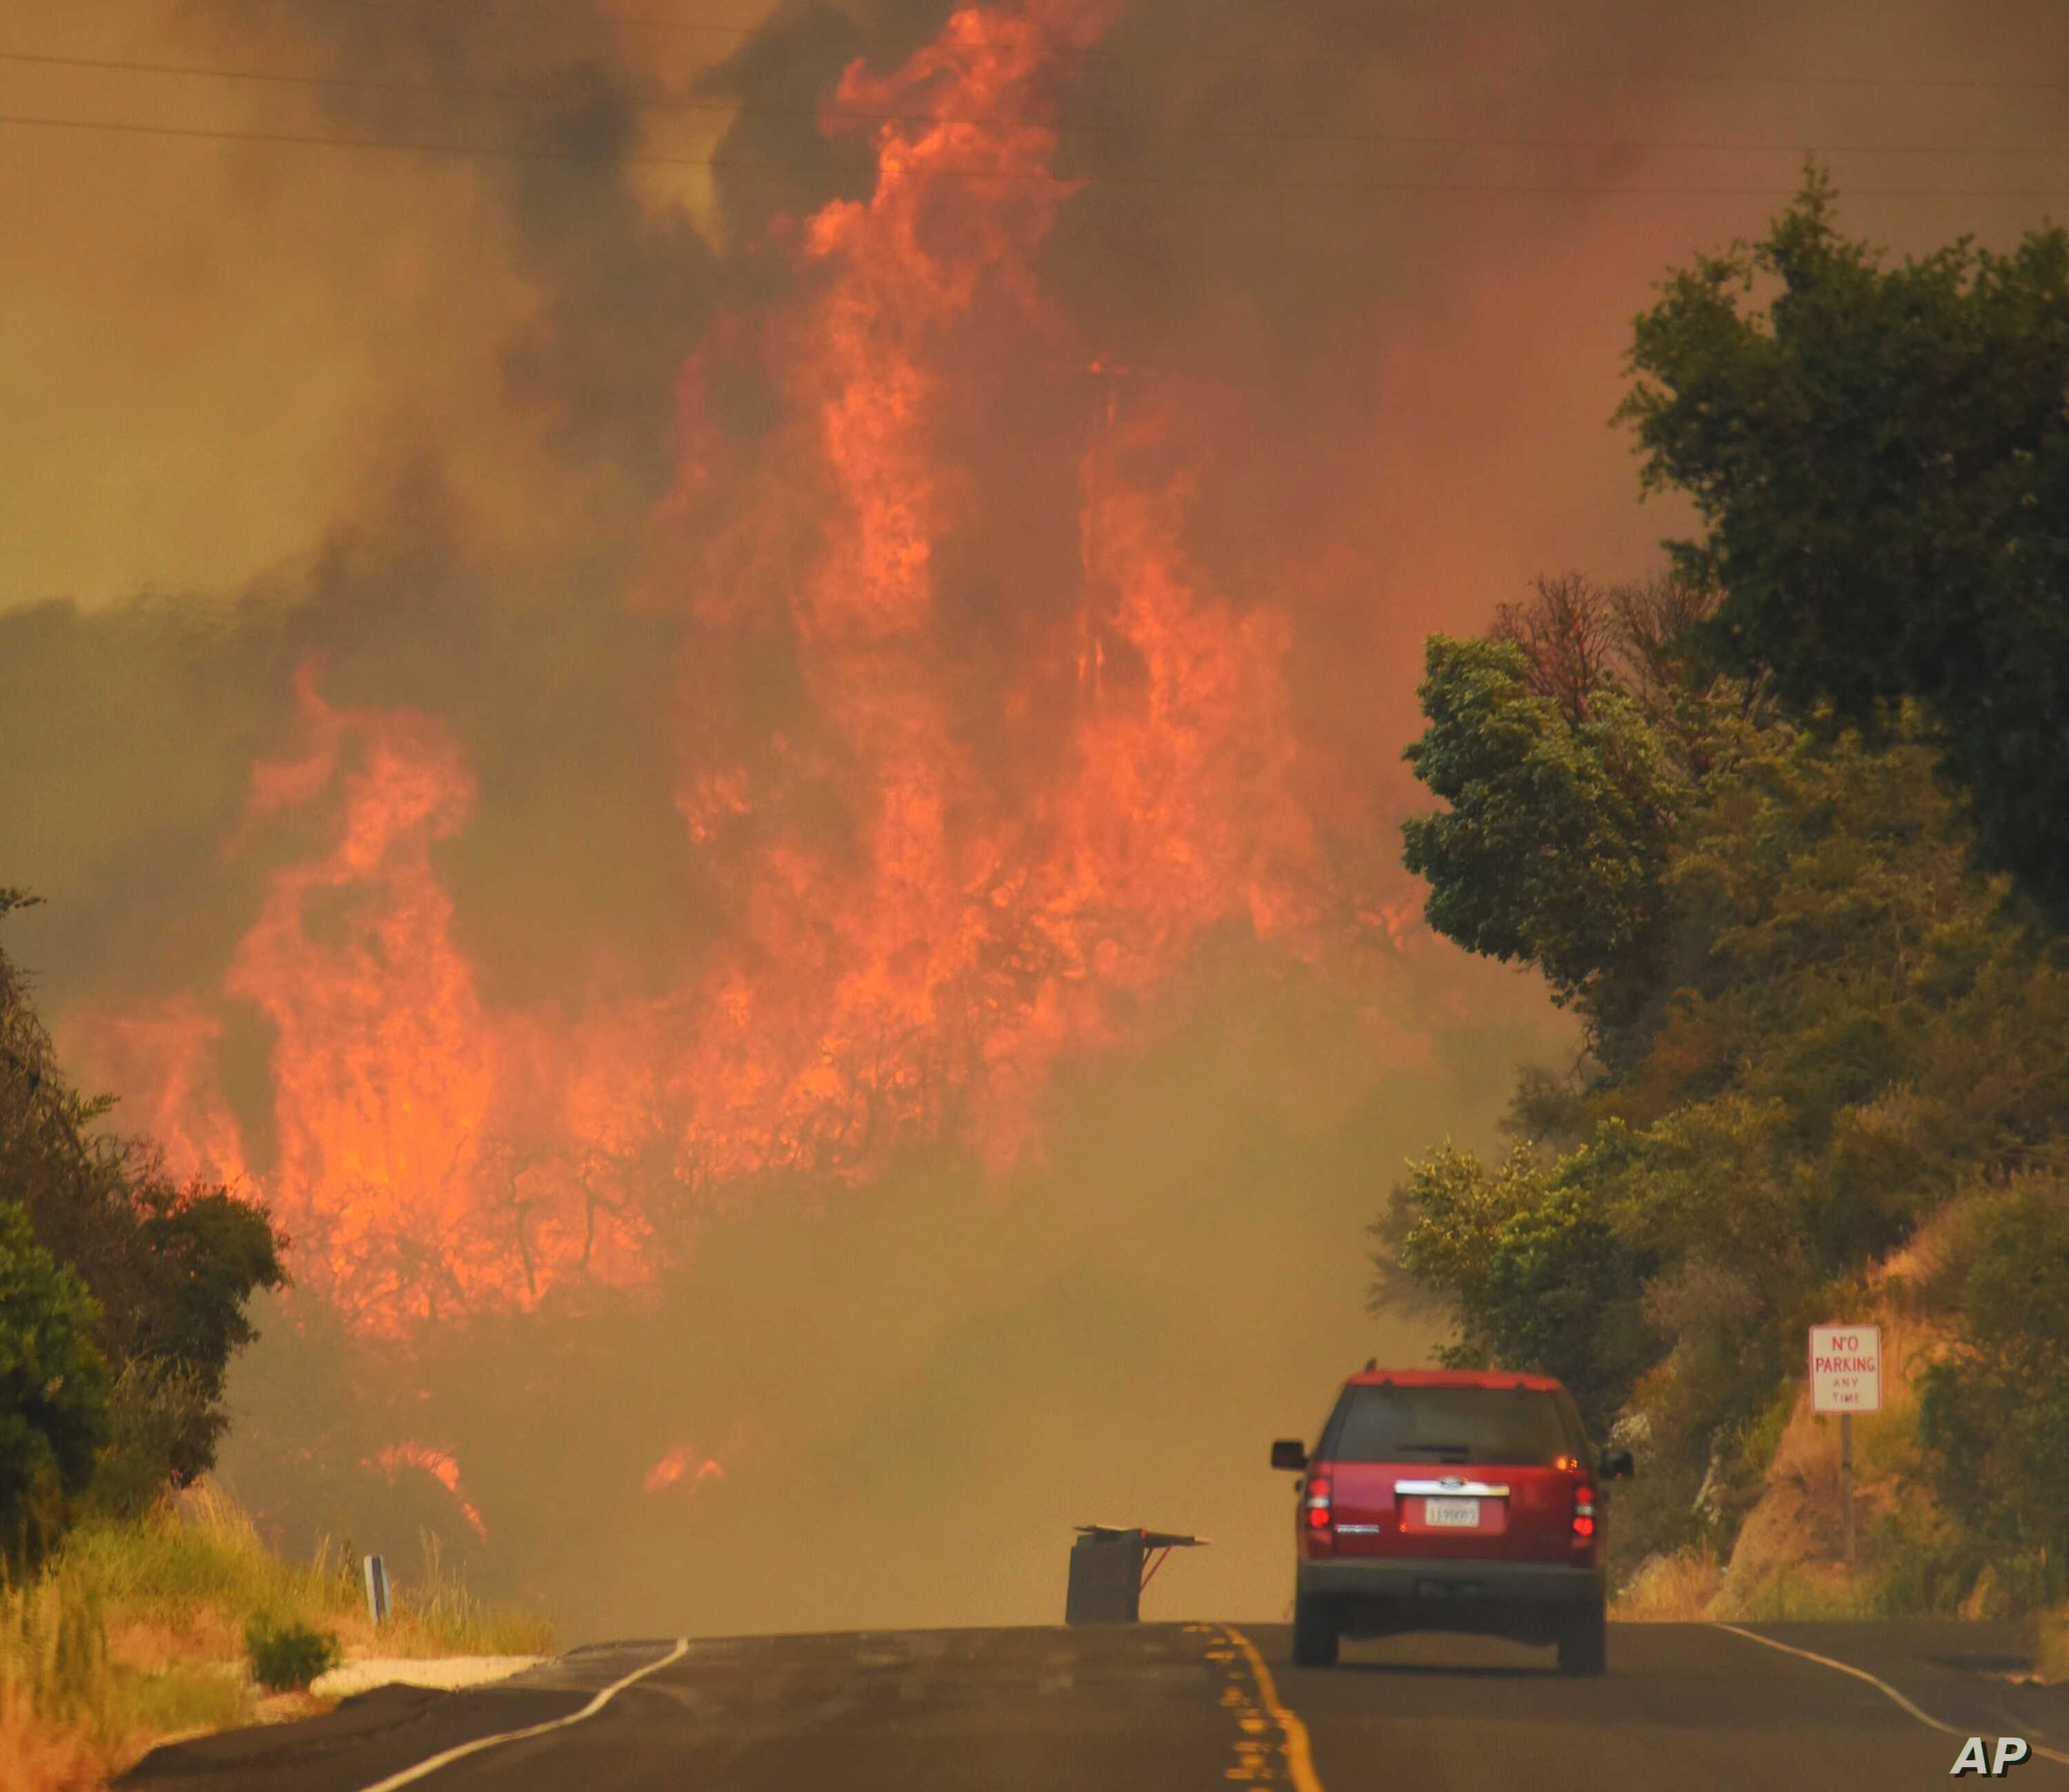 This July 8, 2017, photo released by the Santa Barbara County Fire Department shows a Santa Barbara City Fire vehicle on Highway 154 in the Whittier fire east of Cachuma Lake in Santa Barbara County, California.